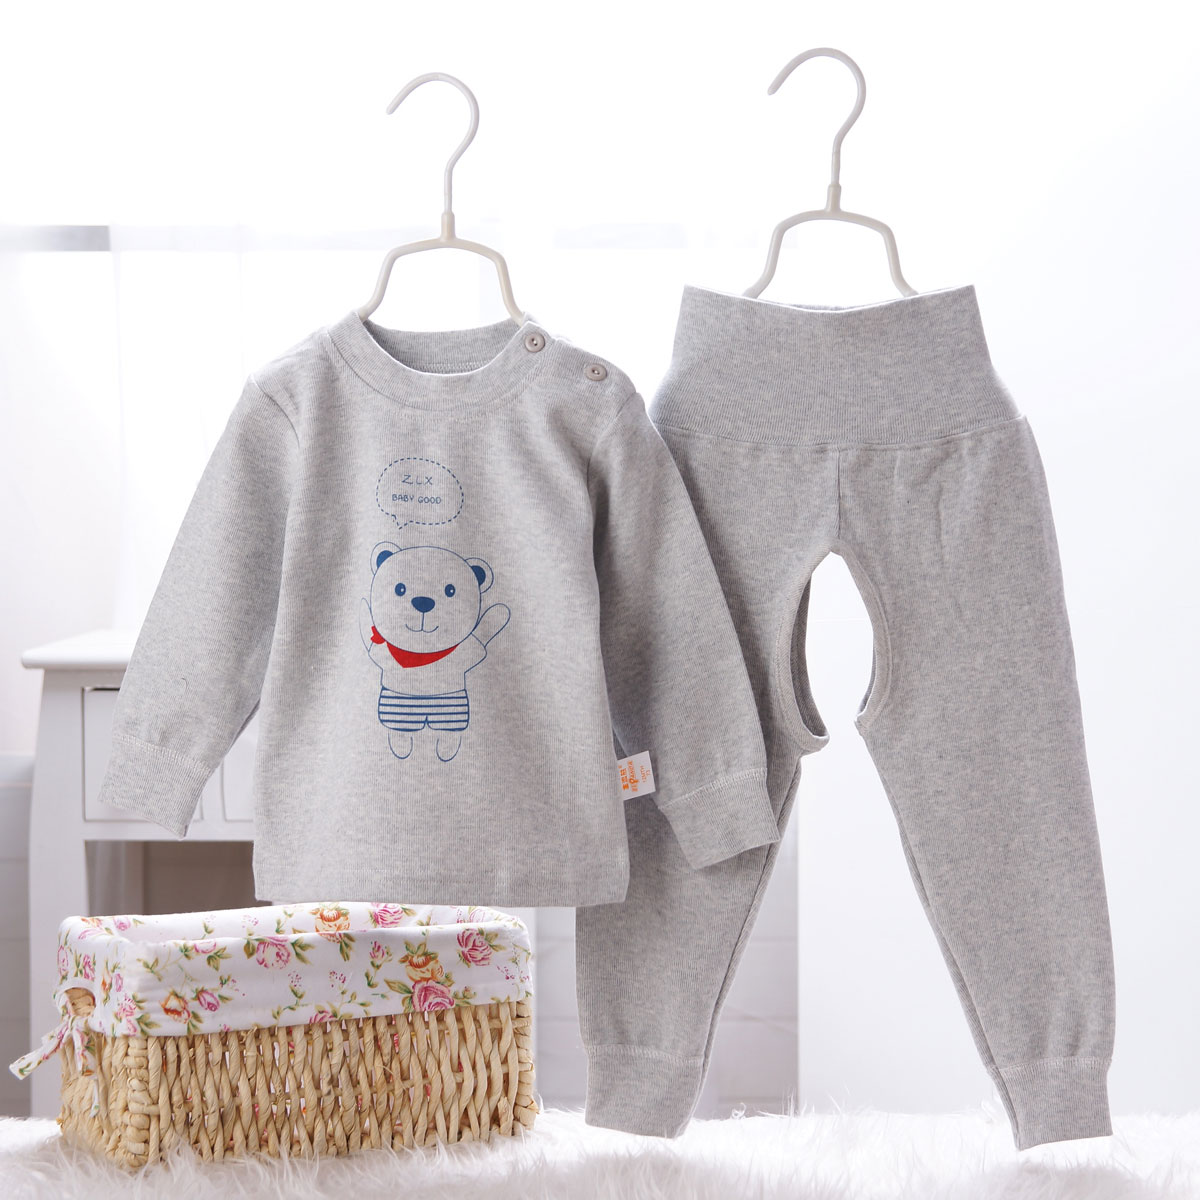 Child care belly waist warm shoulder open underwear sets baby boy autumn autumn clothes baby clothes for men and women long sleeve